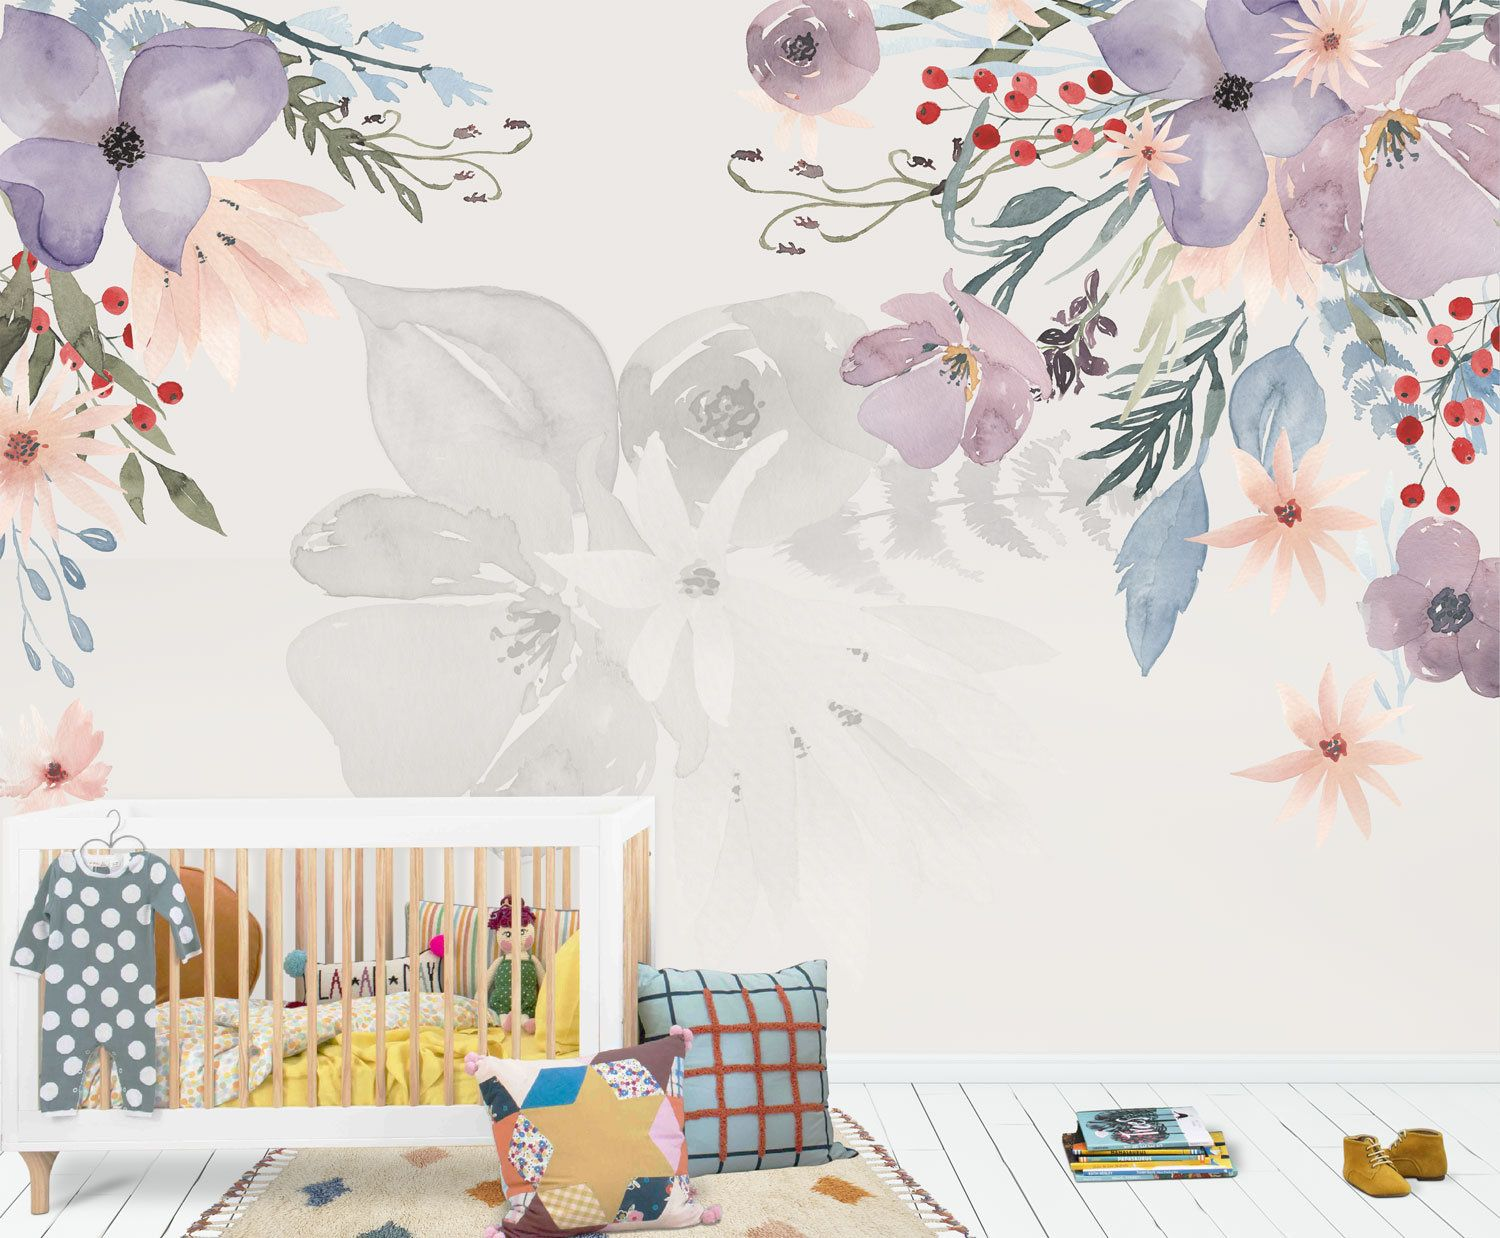 Boho Chic Watercolor Flowers Wall Mural Lila Flowers Wallpaper